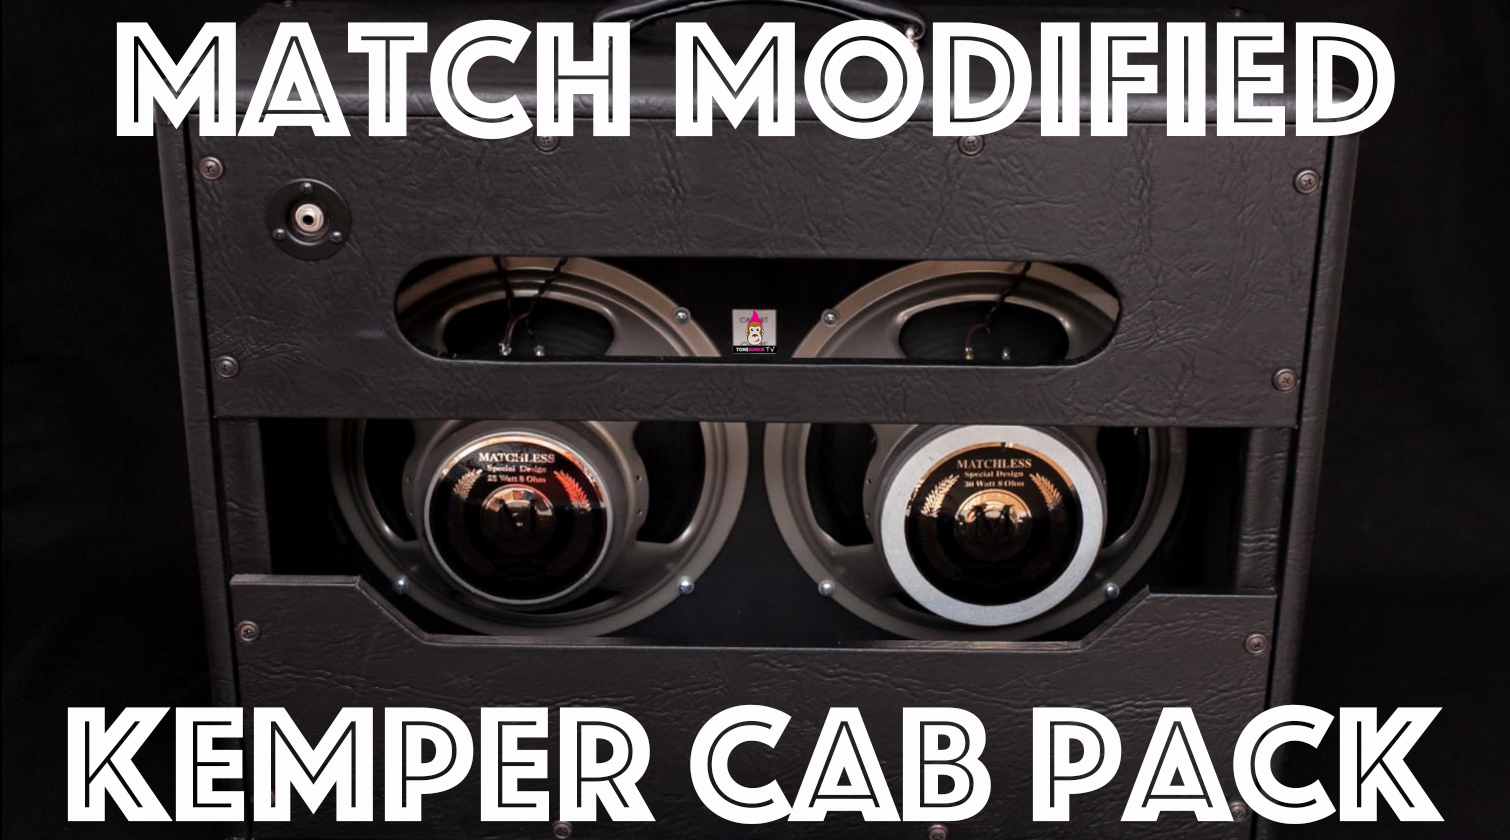 "The Match Modified Kemper Cab Pack features 20 close mic'd captures of a 2x12 Matchless Cabinet with Matchless Modified ""H30"" and ""M25"" speaker made by Celestion. They pair perfectly with Tone Junkie Direct and Studio profiles."